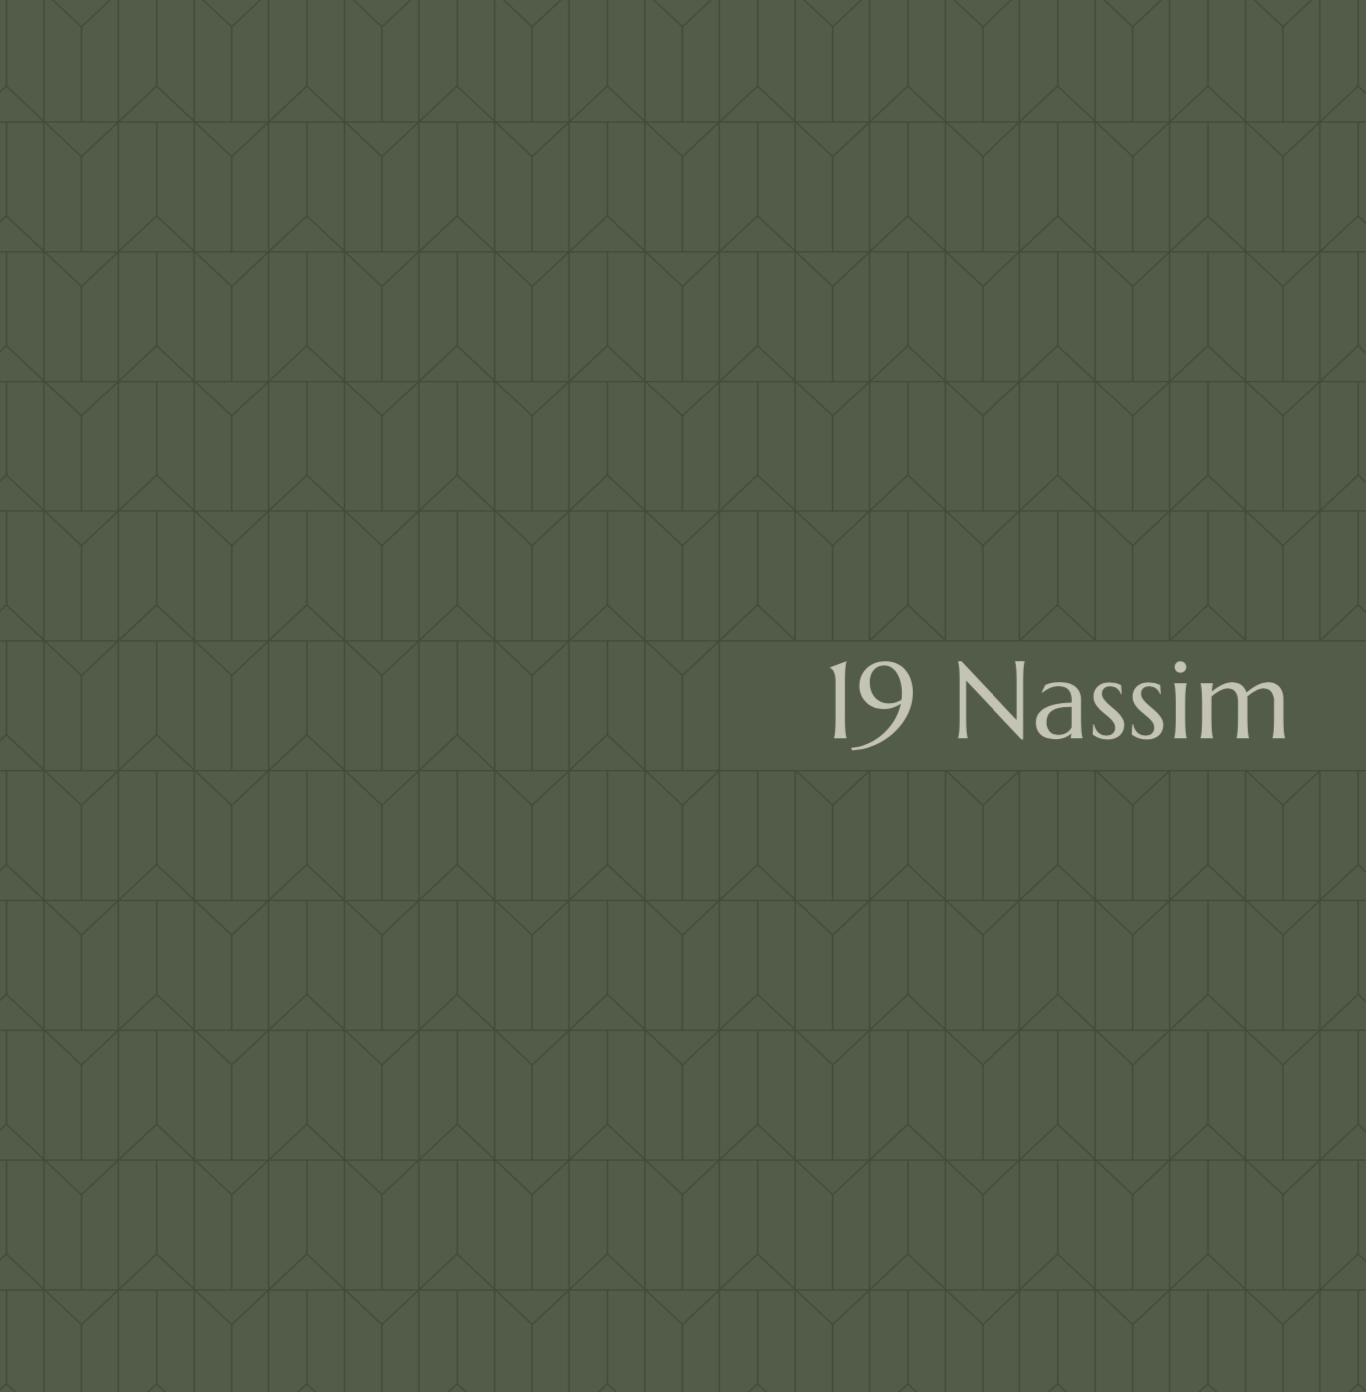 19-nassim-cover-page